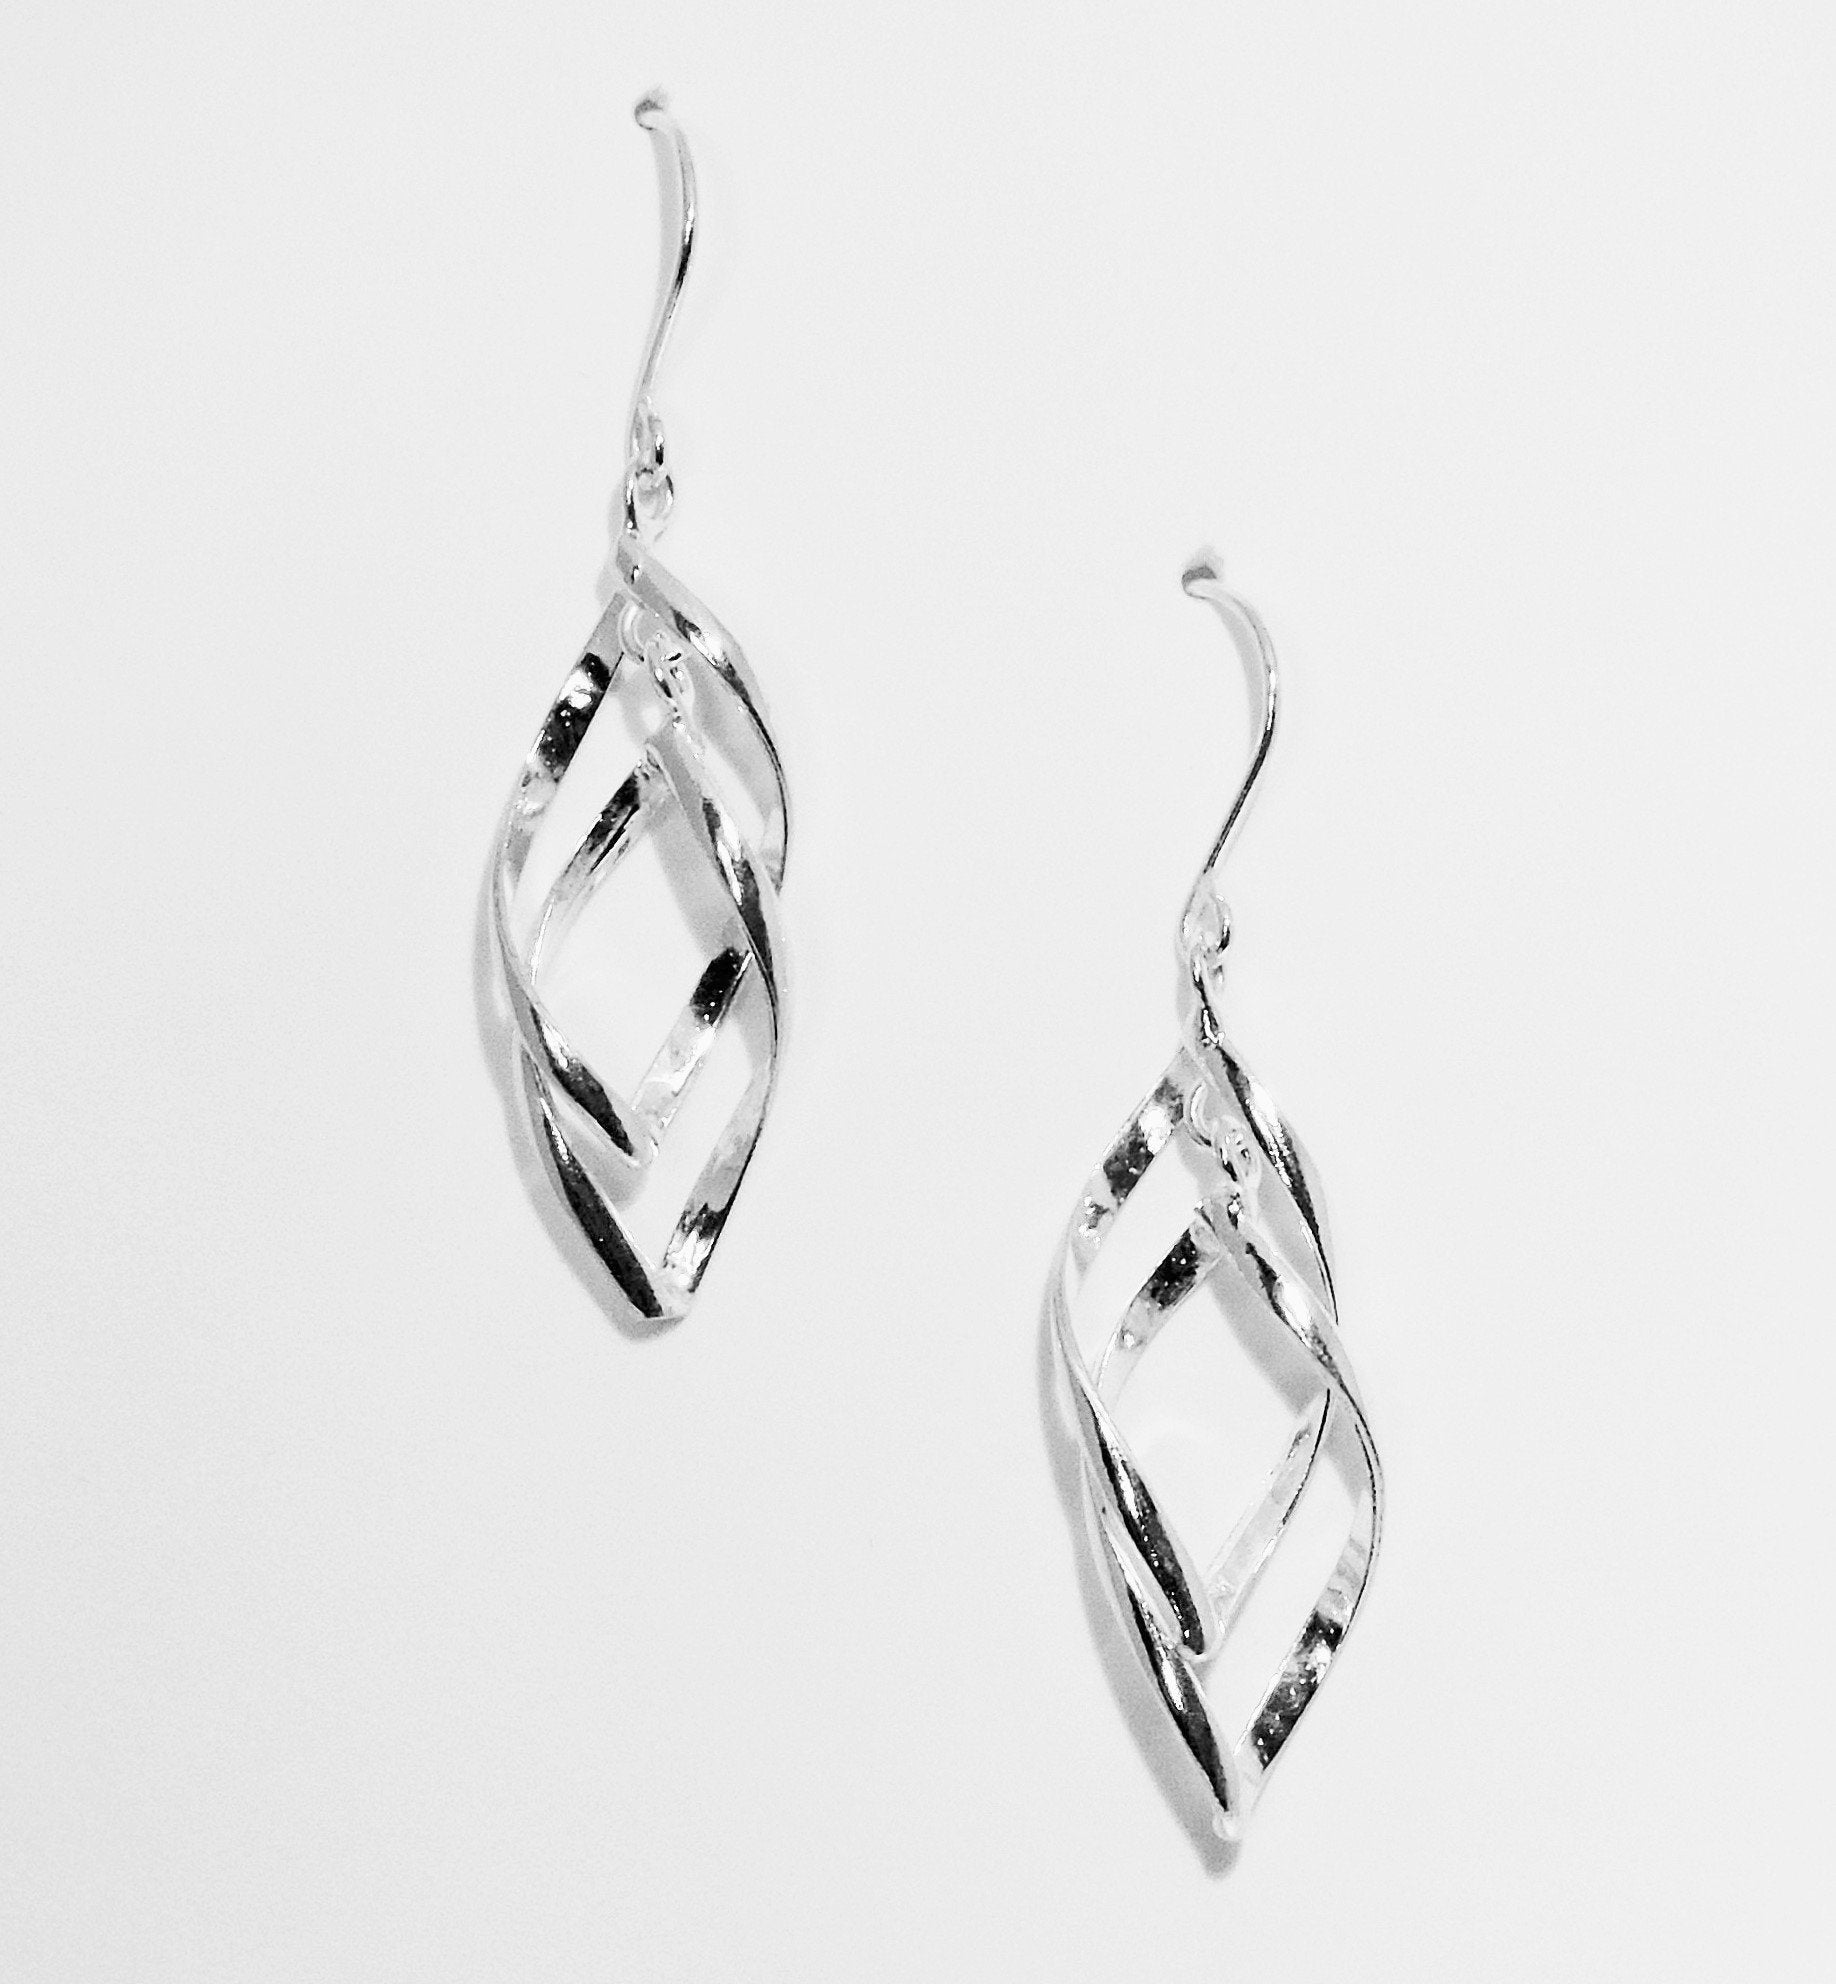 Dancing Twists Sterling Silver Earrings - Qinti - The Peruvian Shop